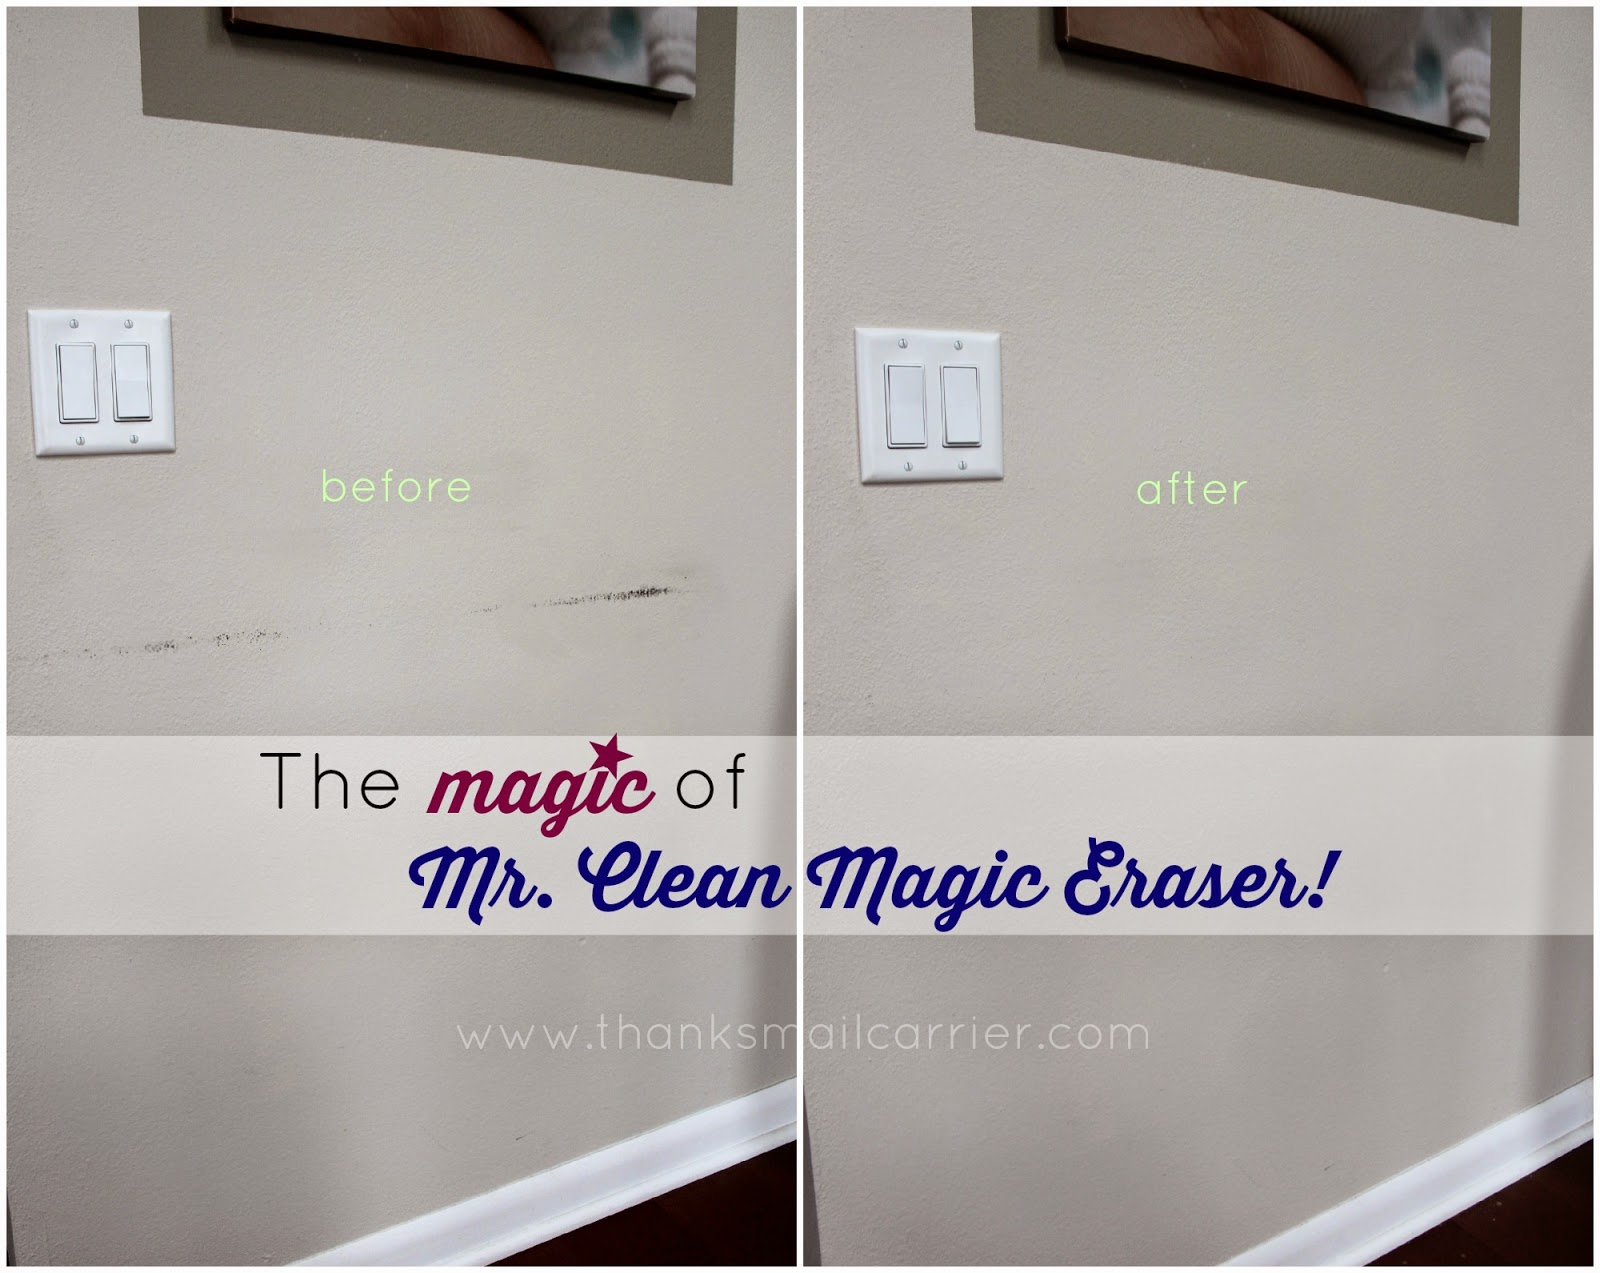 Mr. Clean Magic Eraser walls